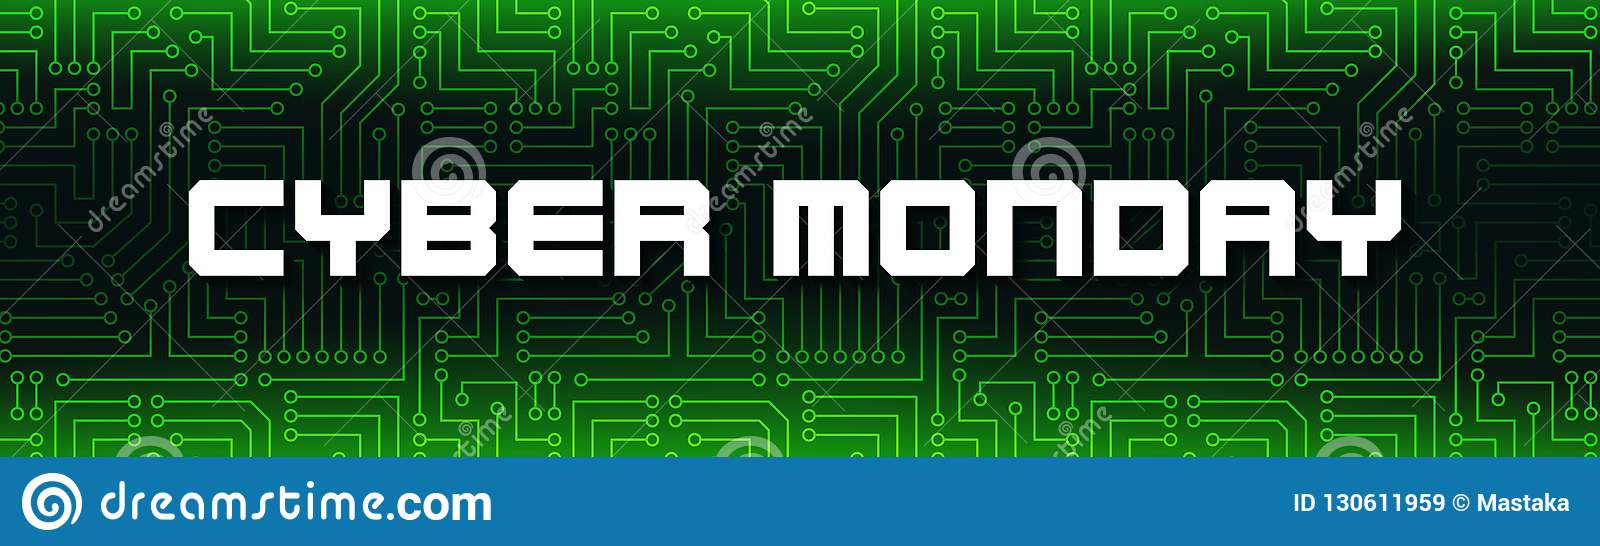 Cyber Monday White Text On Green Printed Circuit Board Stock Of Illustration A